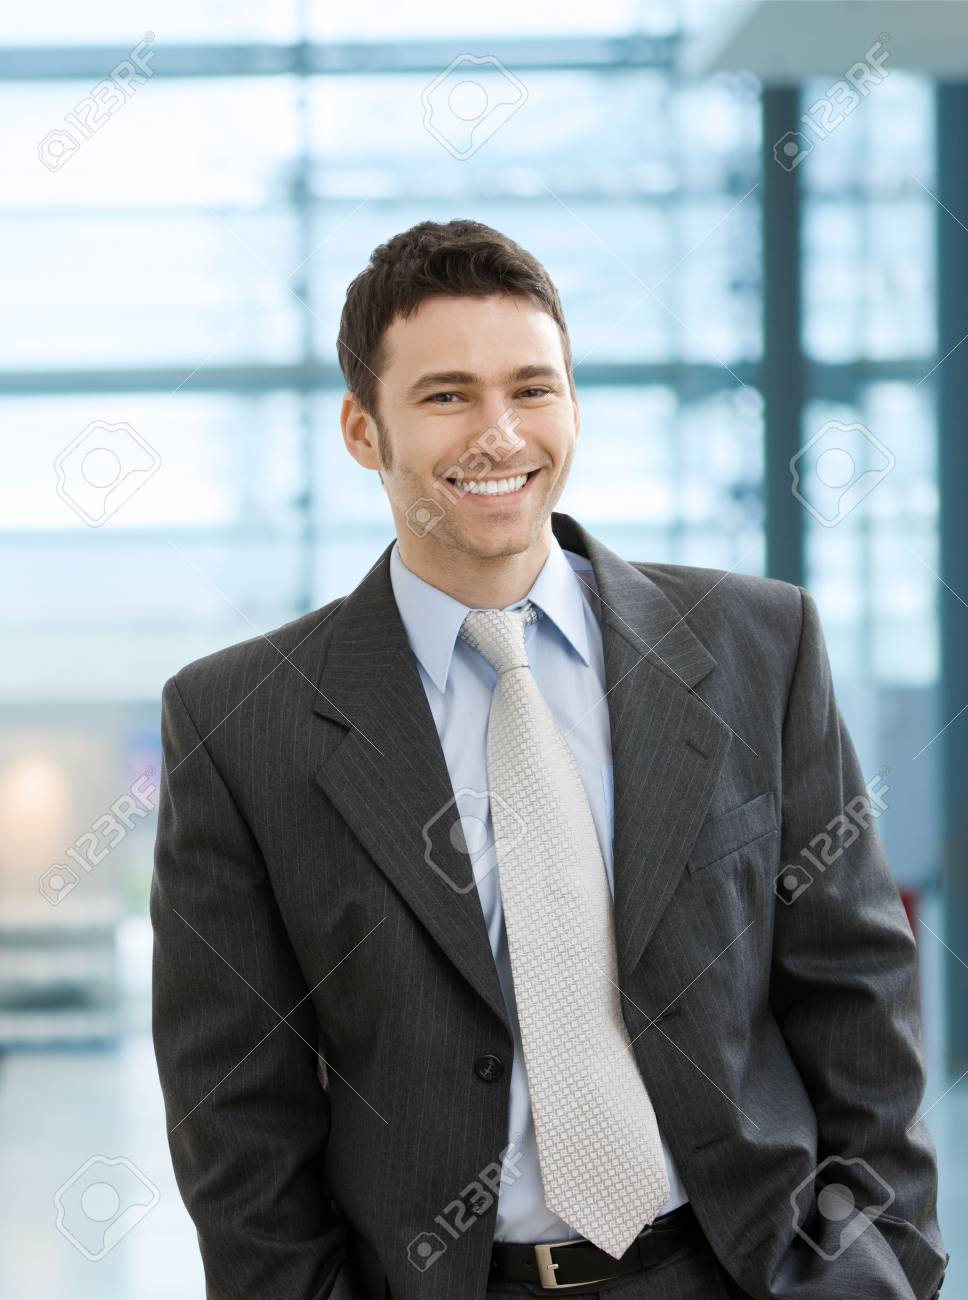 Happy businessman standing with hands in pocket in office lobby, looking at camera, smiling. Stock Photo - 6726331